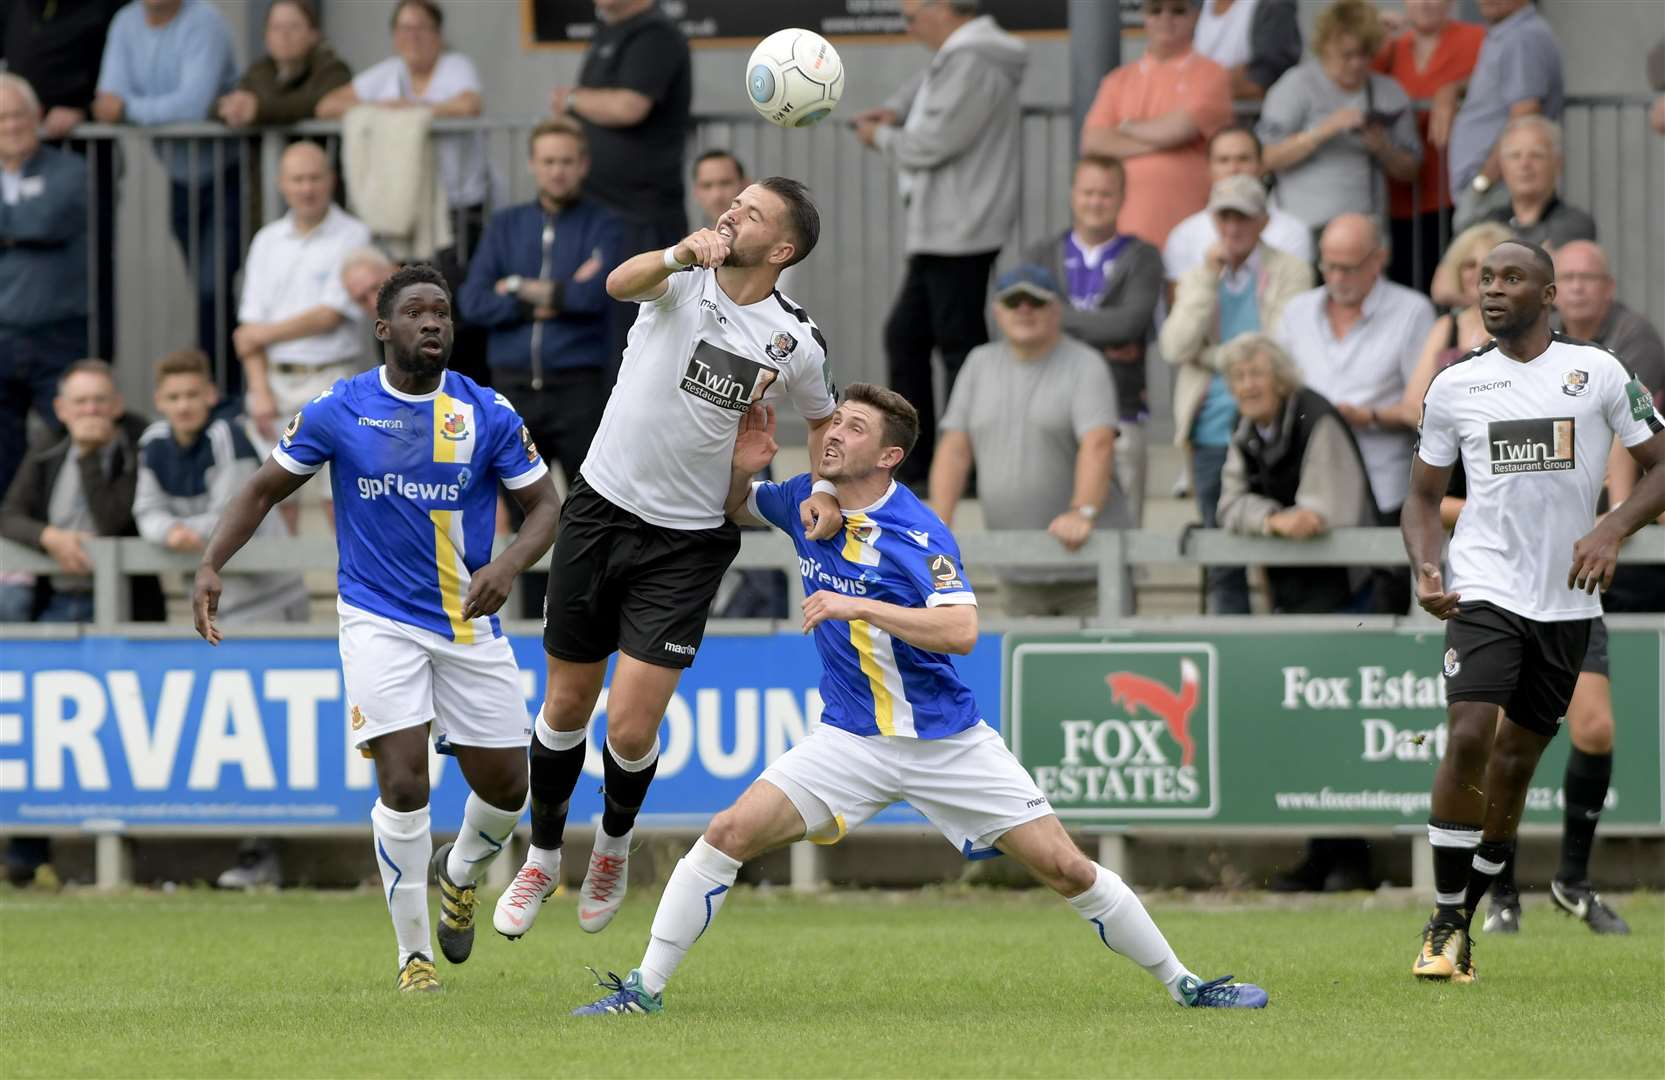 Dartford win the ball against Wealdstone. Picture: Andy Payton